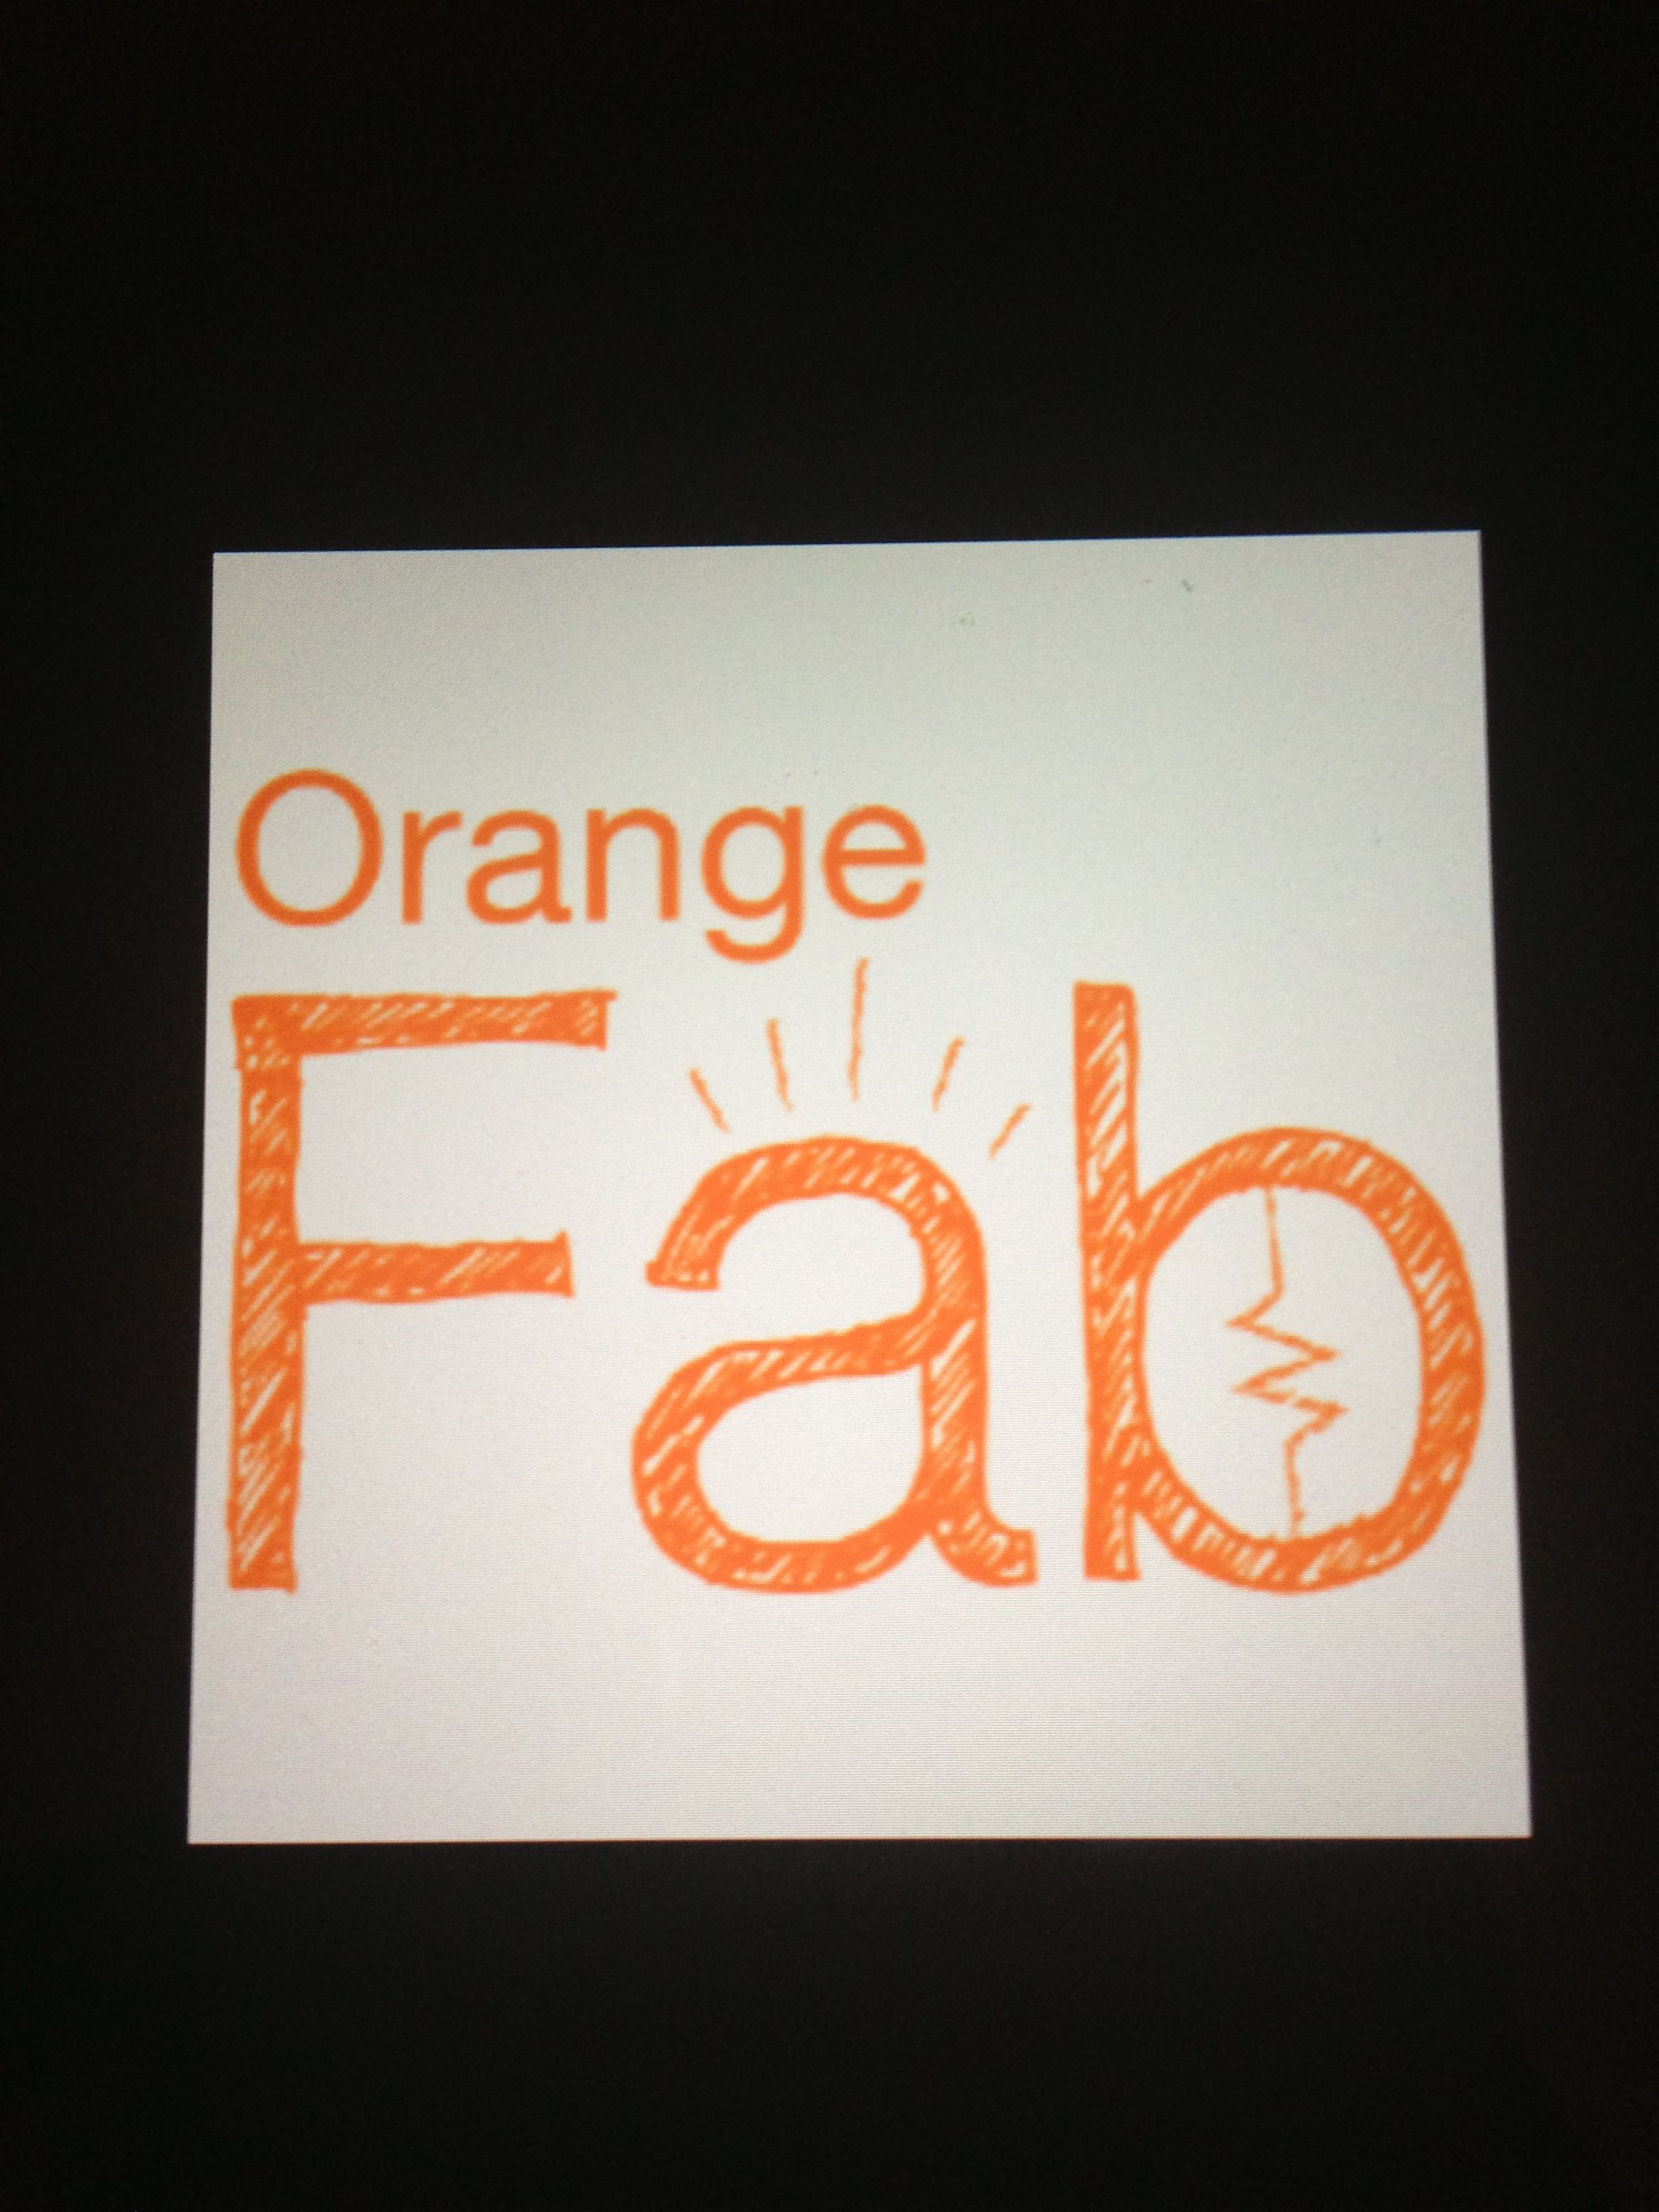 Orange Fab is a SF based Program supporting early stage Start-ups changing the way people connect and communicate #incubator #innovation #creativity